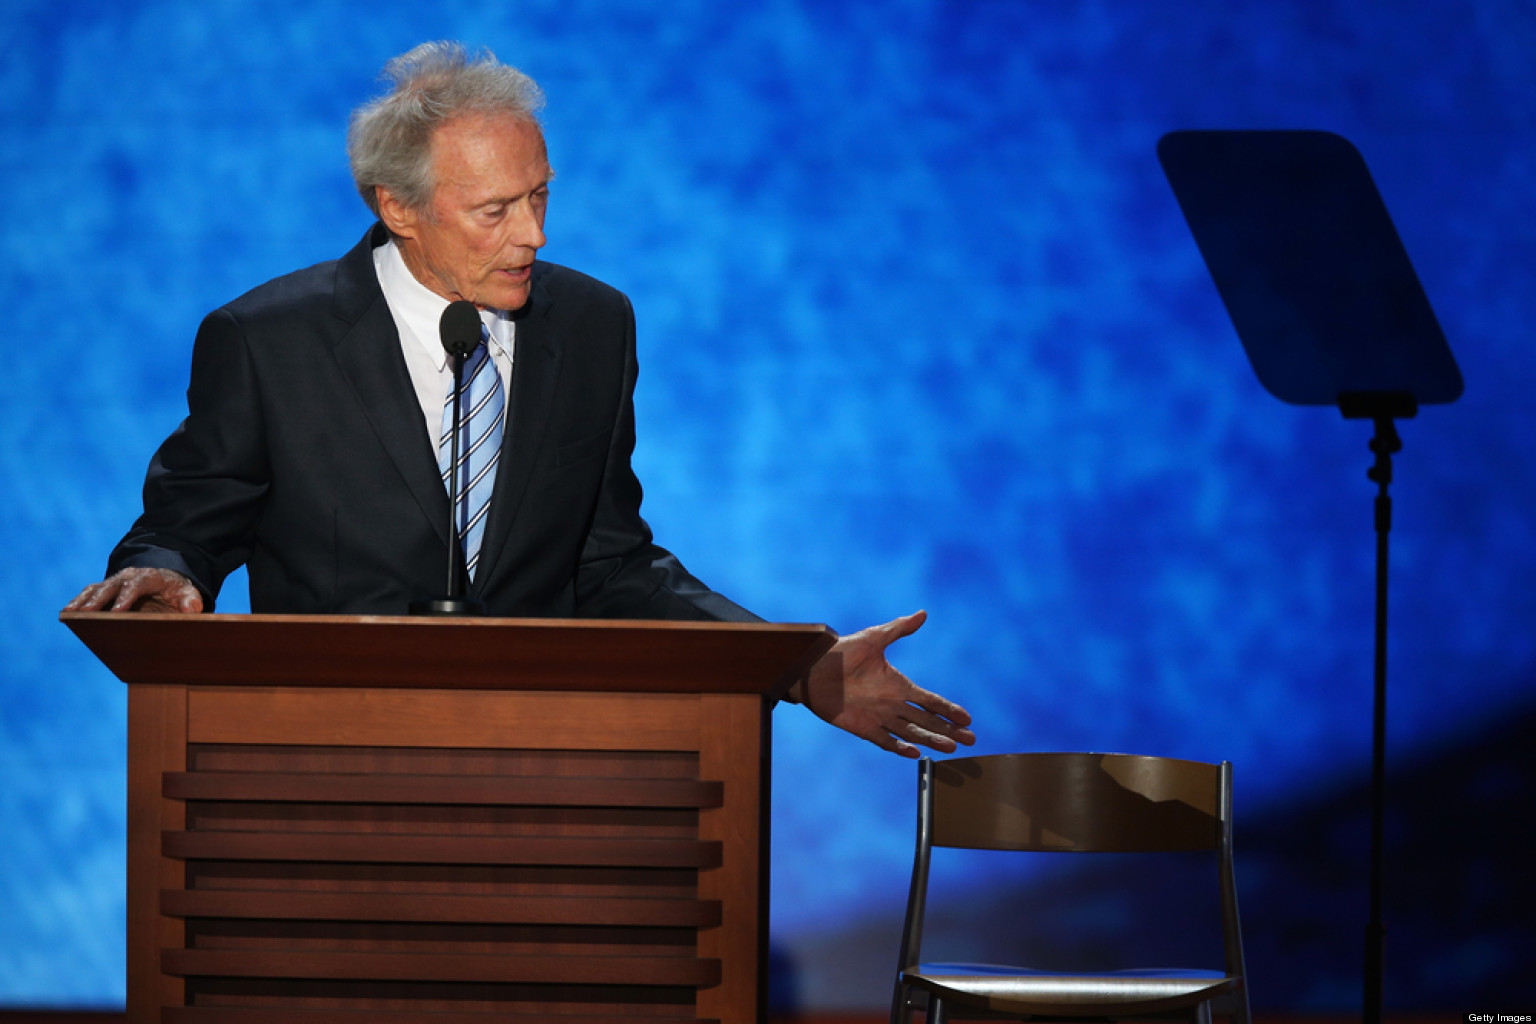 clint eastwood i thought of talking to an empty chair in